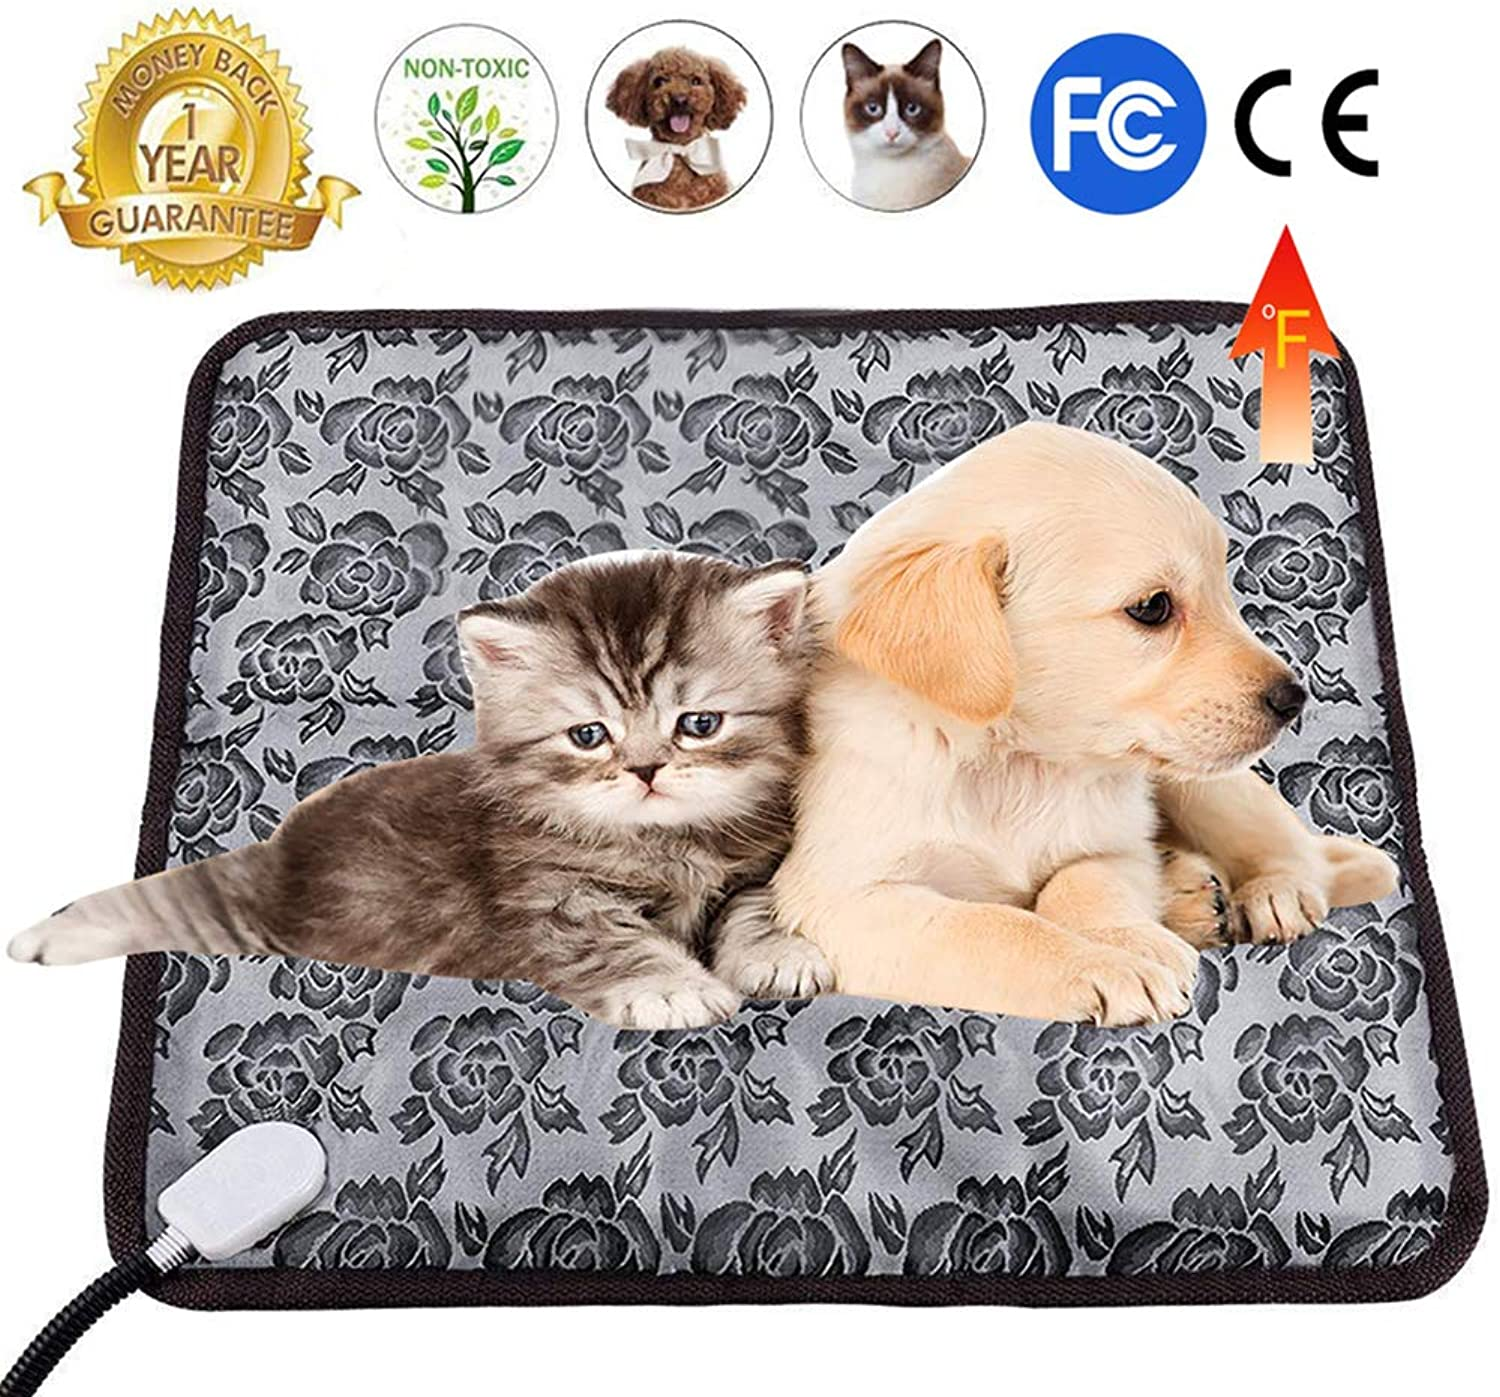 Lmeison Pet Heating Pad, Water Resistant Dog Cat Electric Heating Pad Indoor Adjustable Warming Mat with Chew Resistant Steel Cord